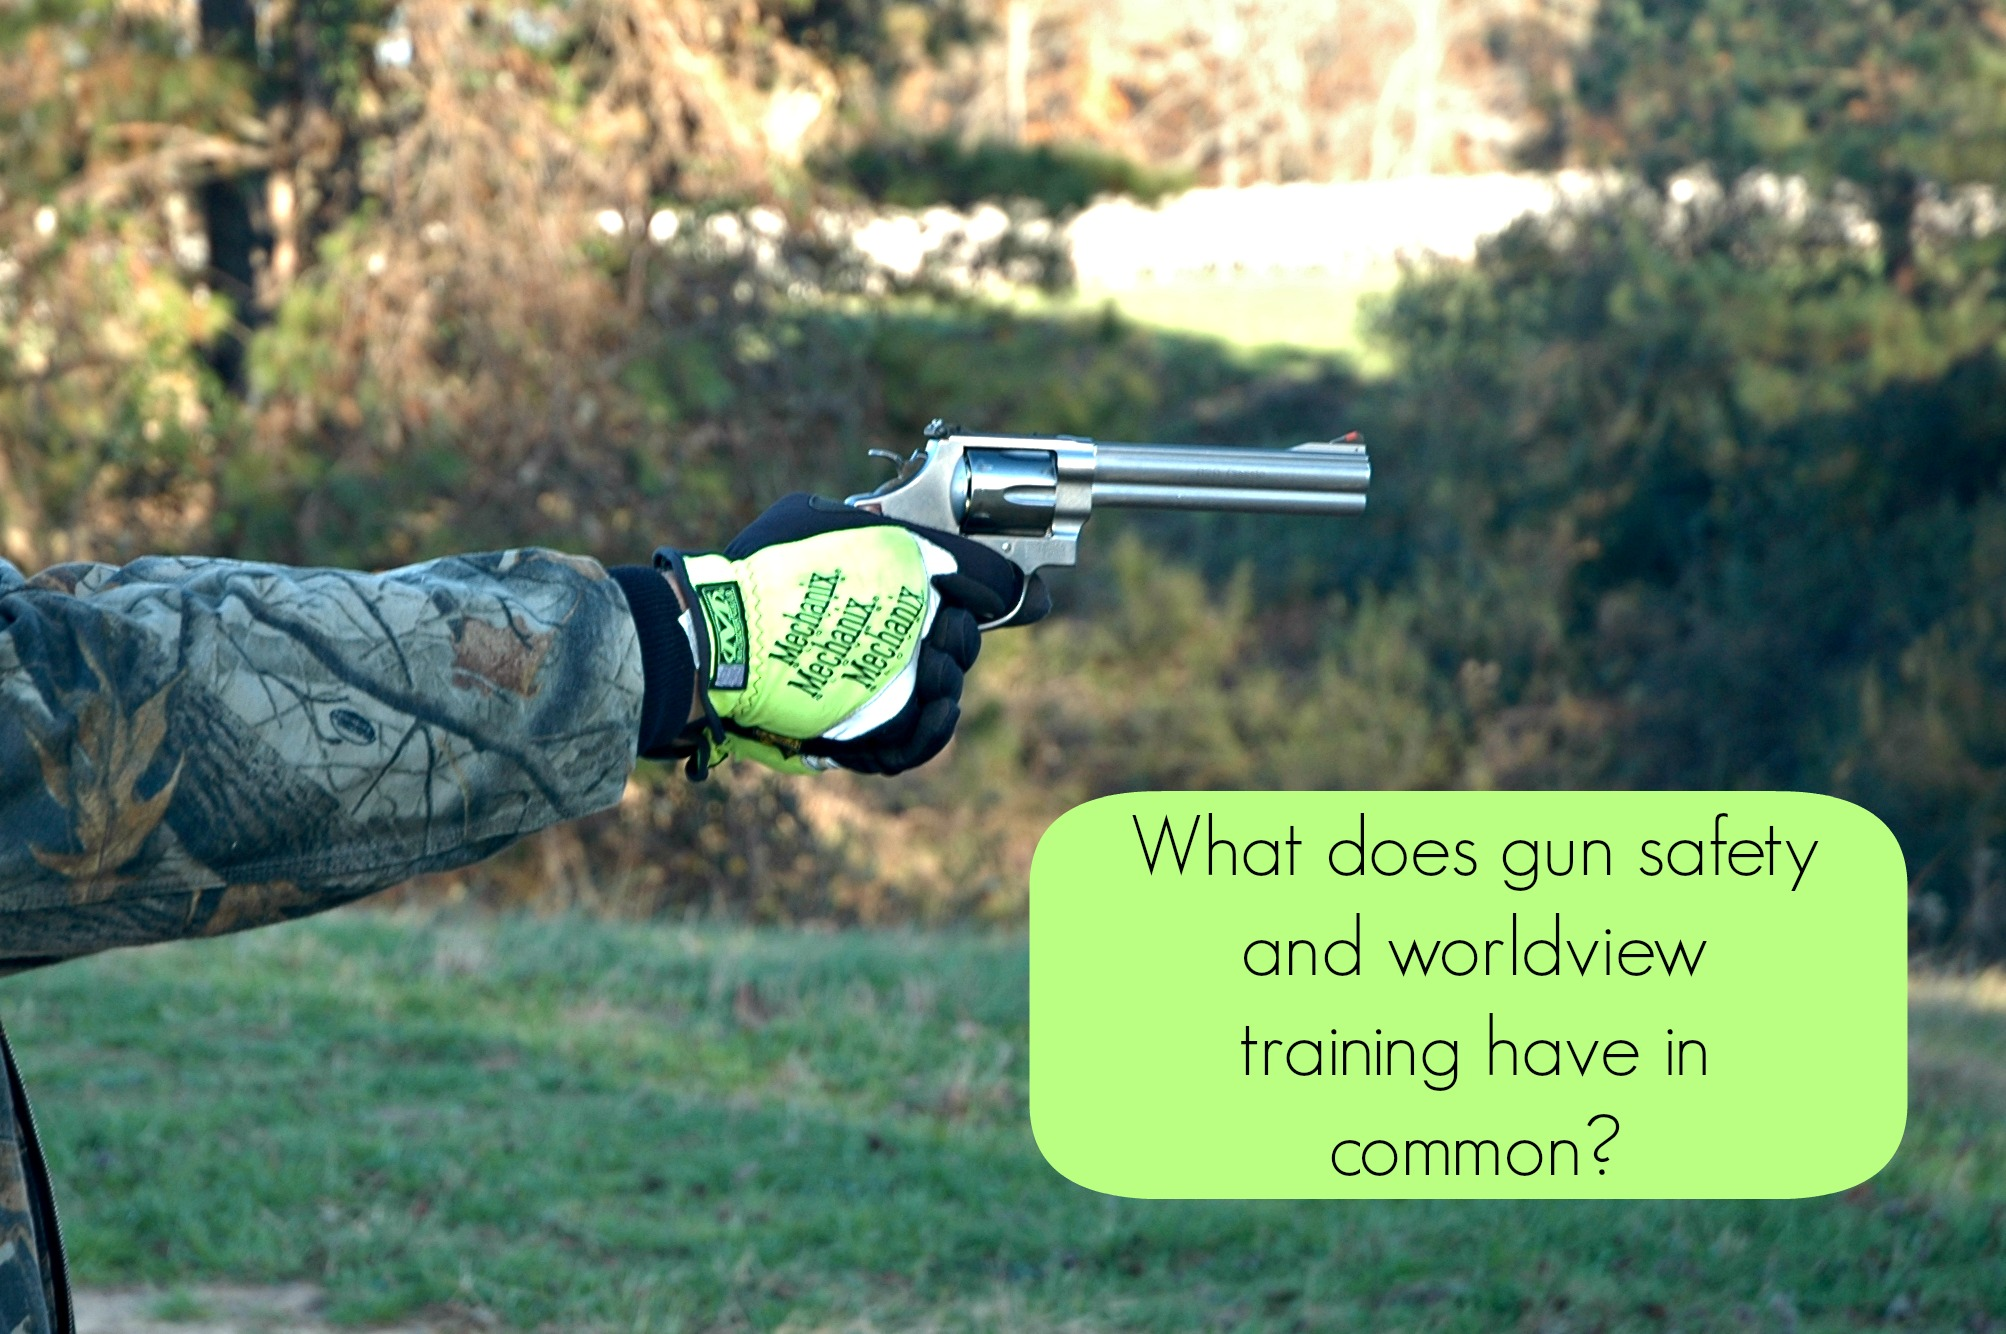 gun safety and worldview training